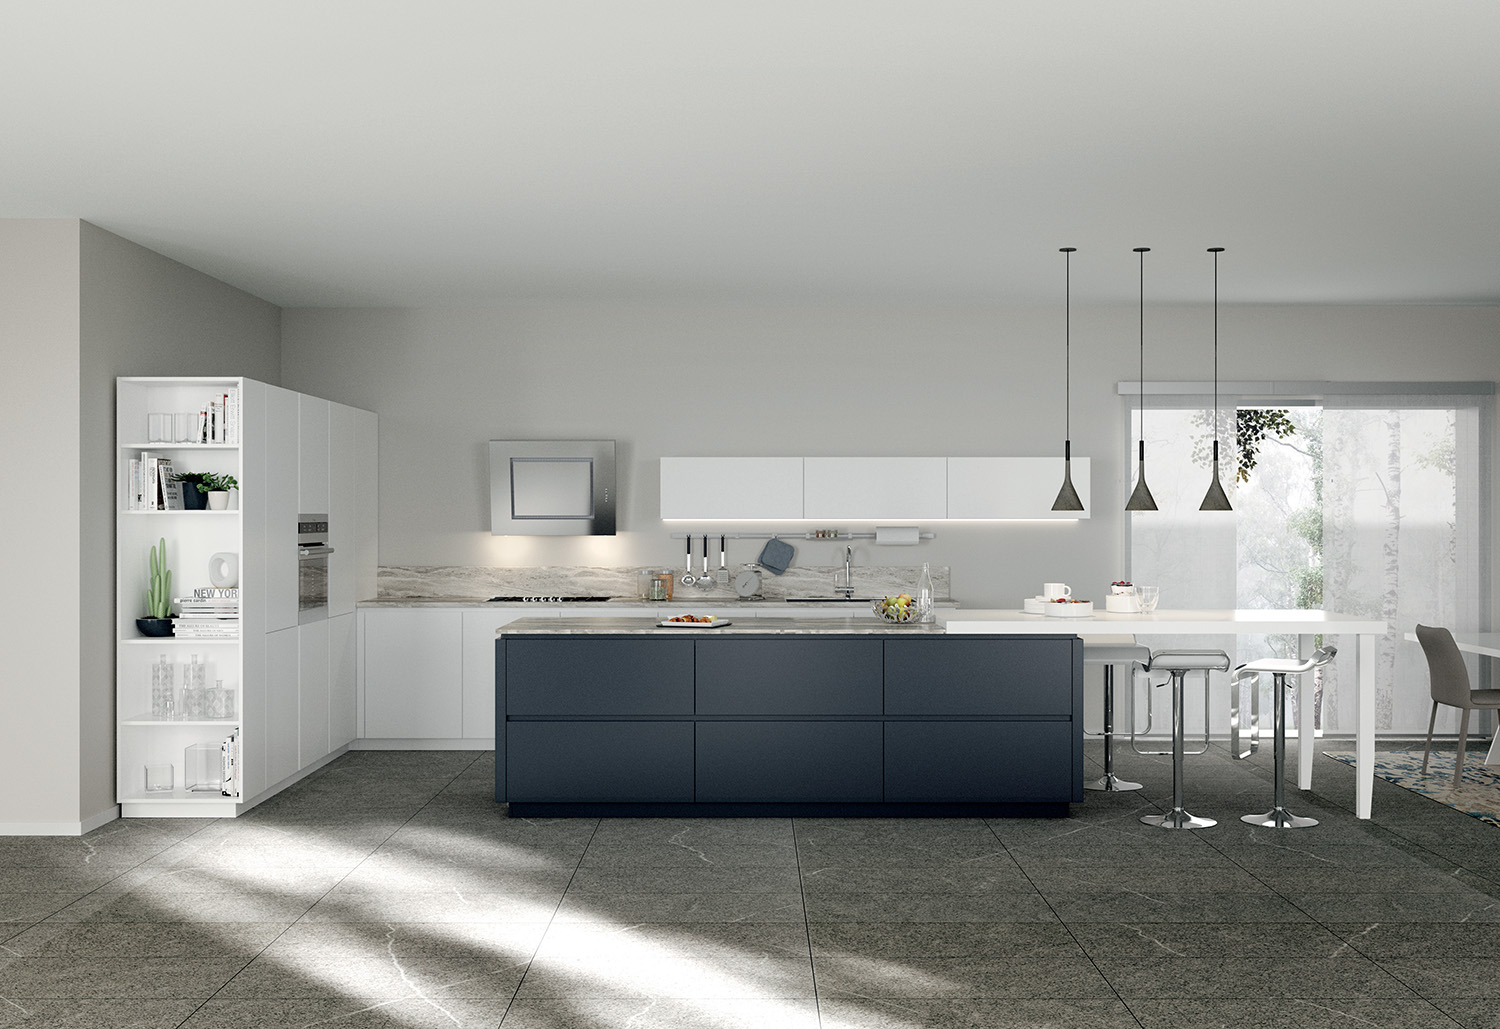 ▷ Cucine moderne 2019: tendenze, stili e materiali - La ...